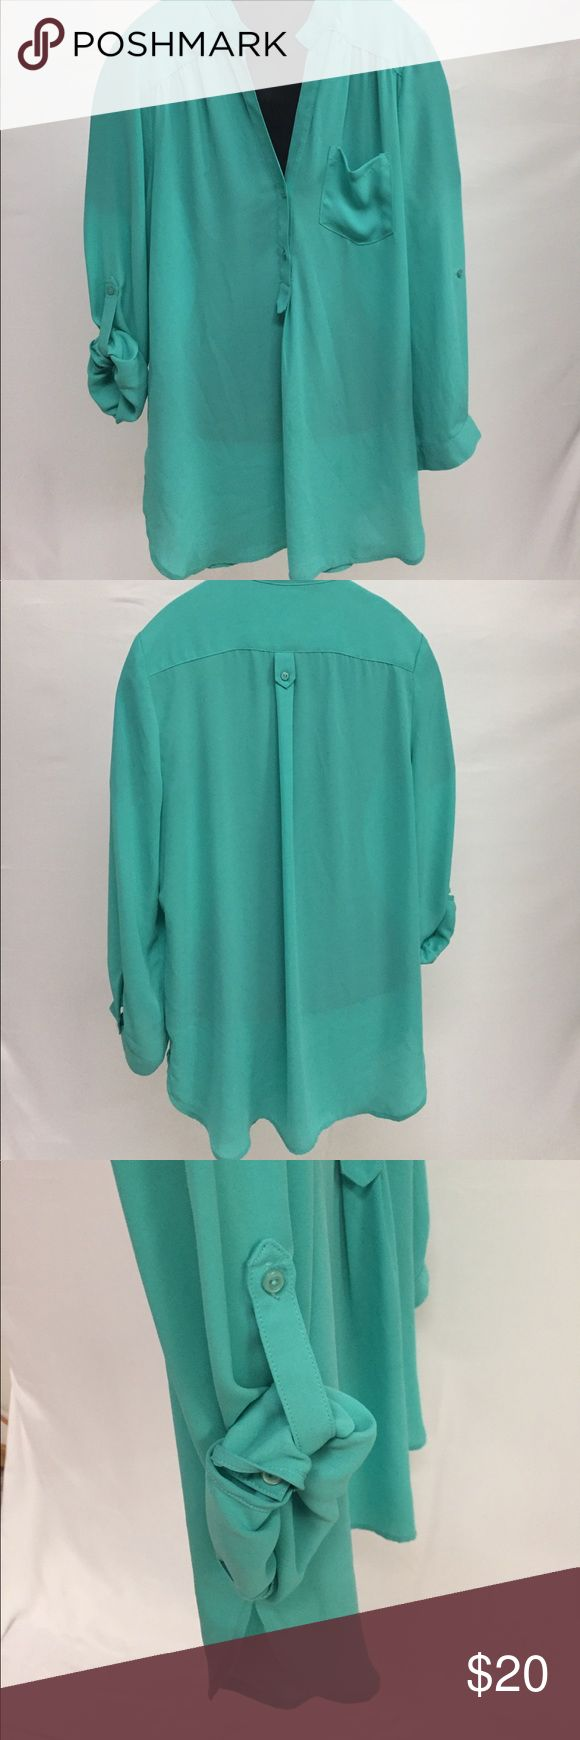 41 Hawthorn Green Tunic Top PERFECT FOR SPRING This is a beautiful 100% polyester 41 Hawthorne green Tunic. This shirt is thinner material so it's perfect for spring. Great worn with leggings or skinny jeans. There is one very minor spot that is captured on the last pic of the tag. It is not very noticeable and I only found it while doing a very deep inspection of the shirt. Great shirt for work or casual! 41 Hawthorn Tops Tunics